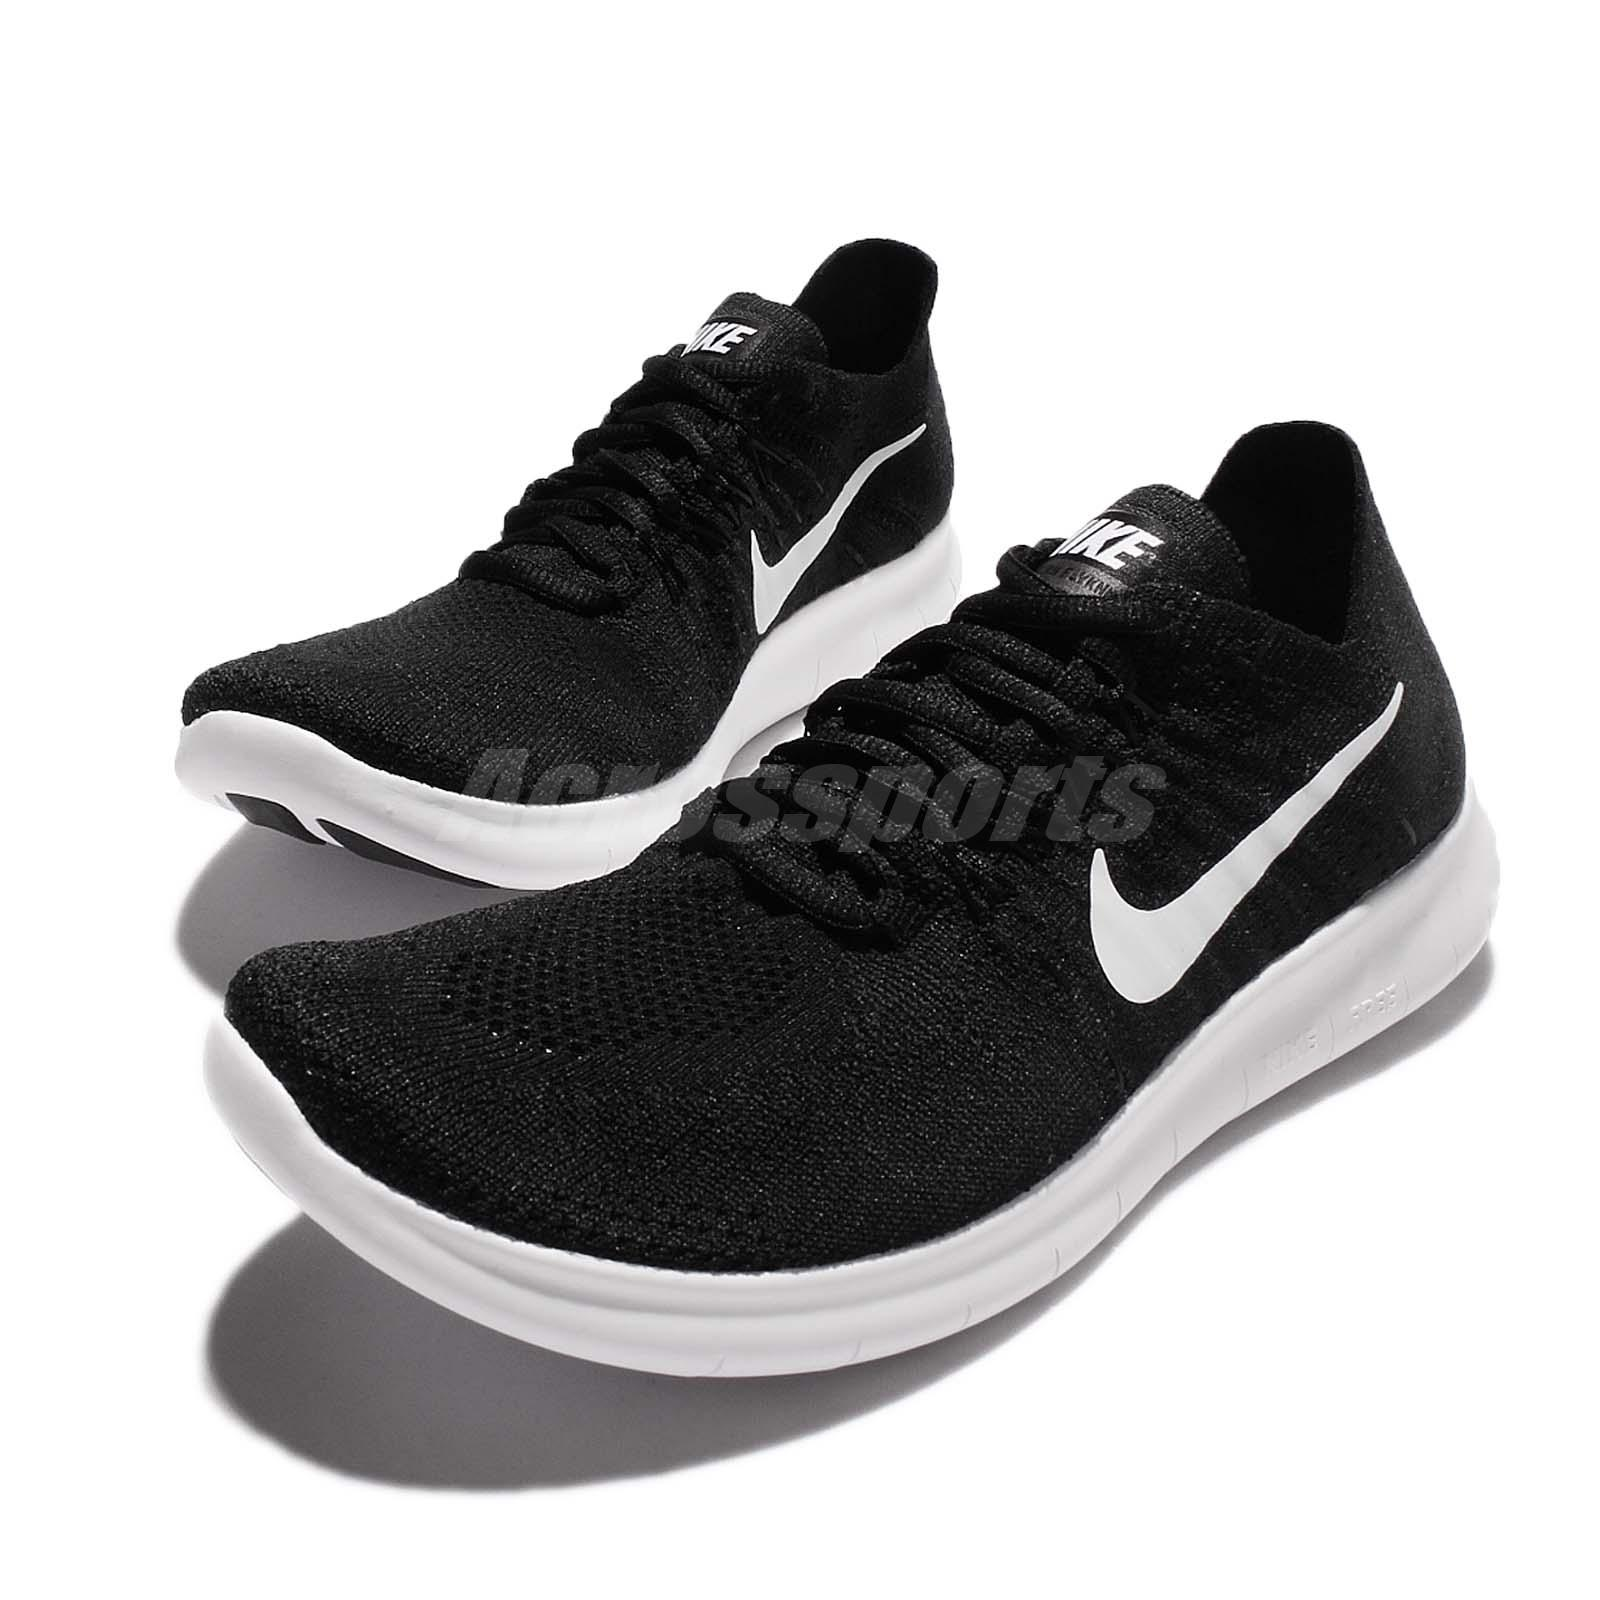 separation shoes 4b85d 47aa9 Details about Wmns Nike Free RN Flyknit 2017 Run Black White Women Running  Shoes 880844-001